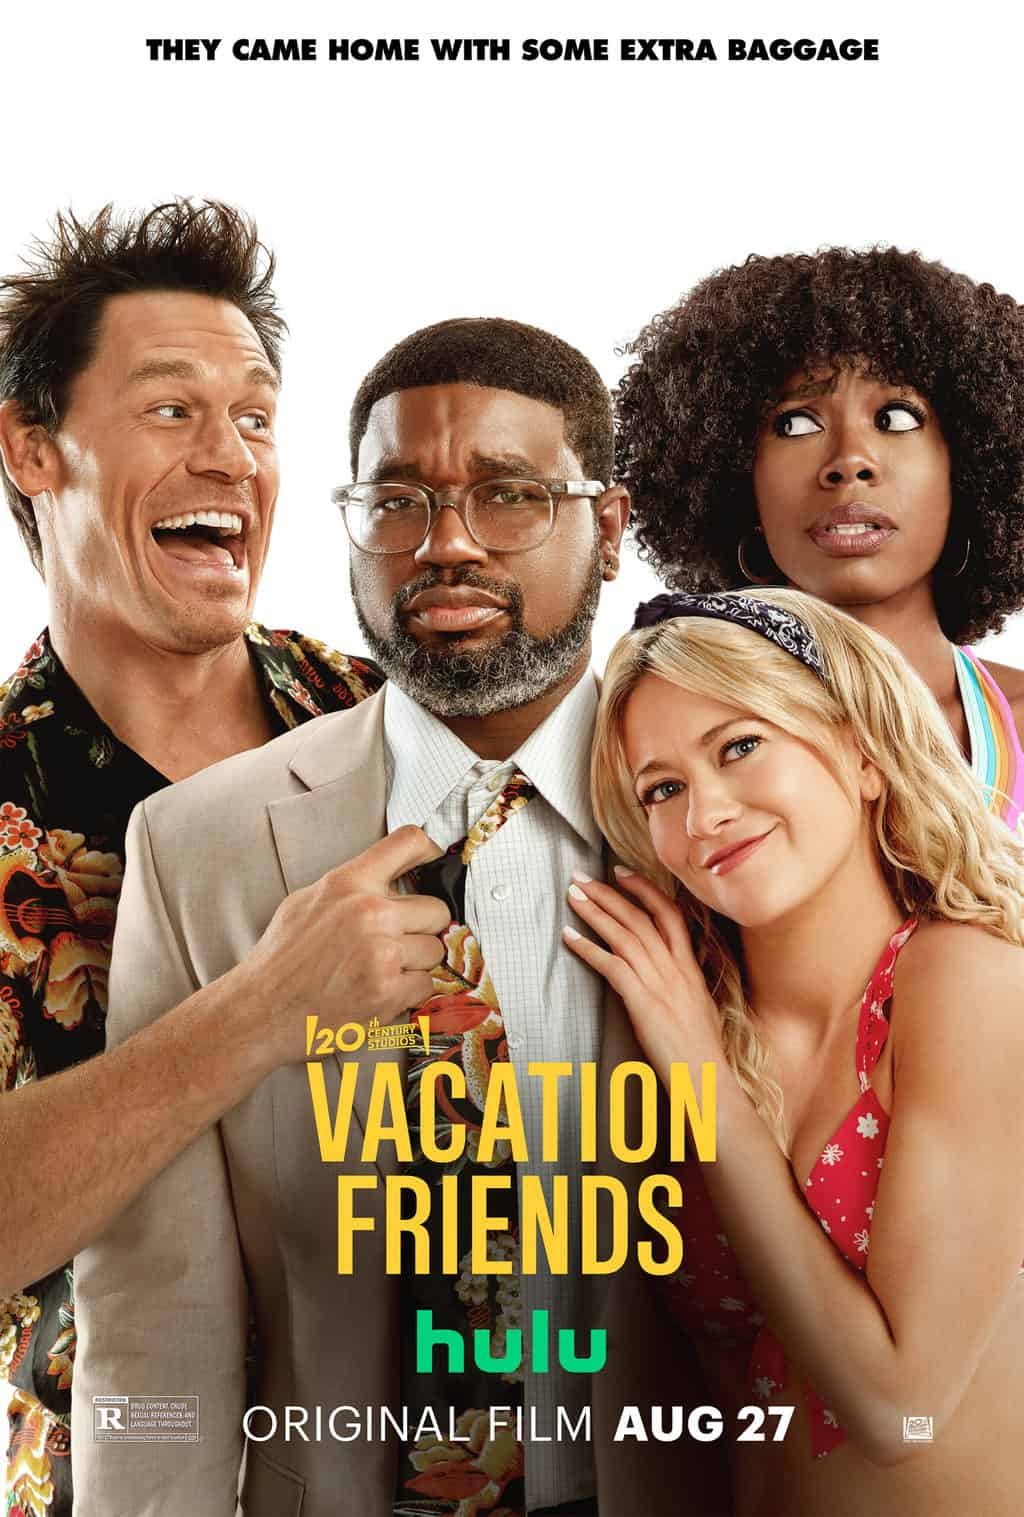 is VACATION FRIENDS safe for kids to watch